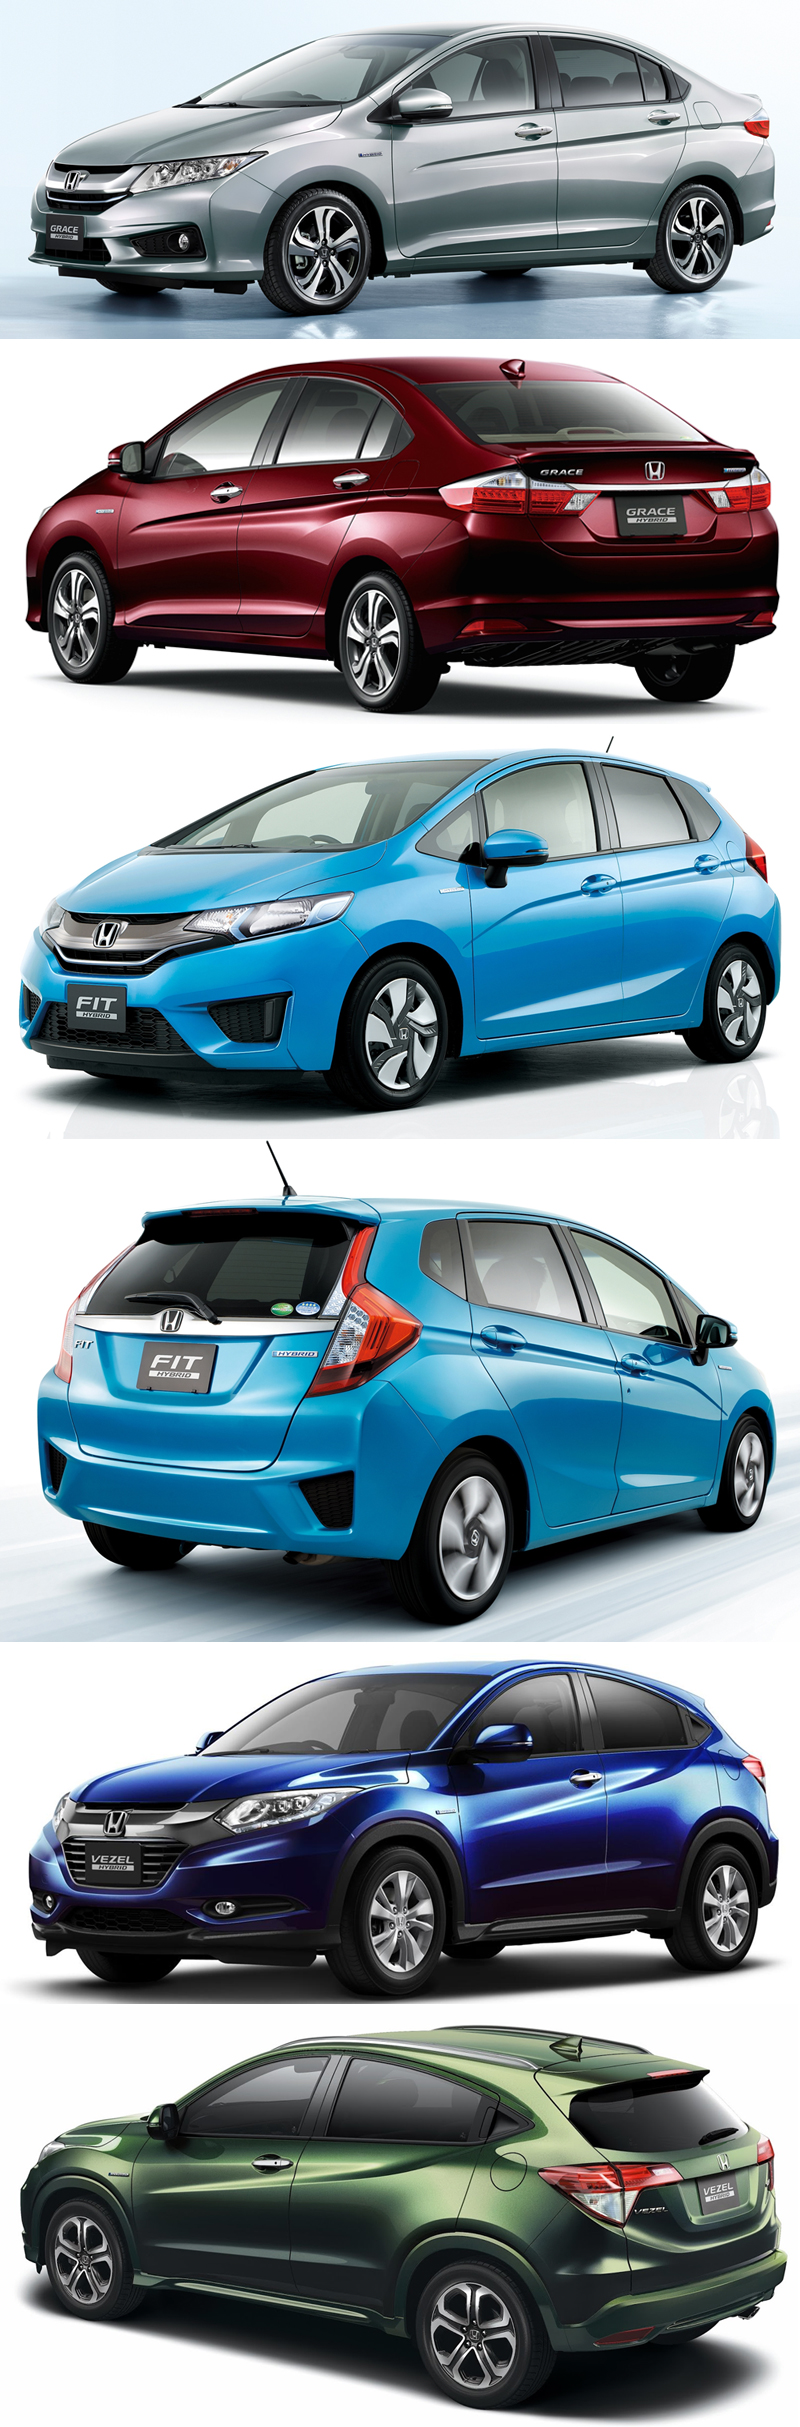 2018 Honda Jazz Hybrid photo - 1